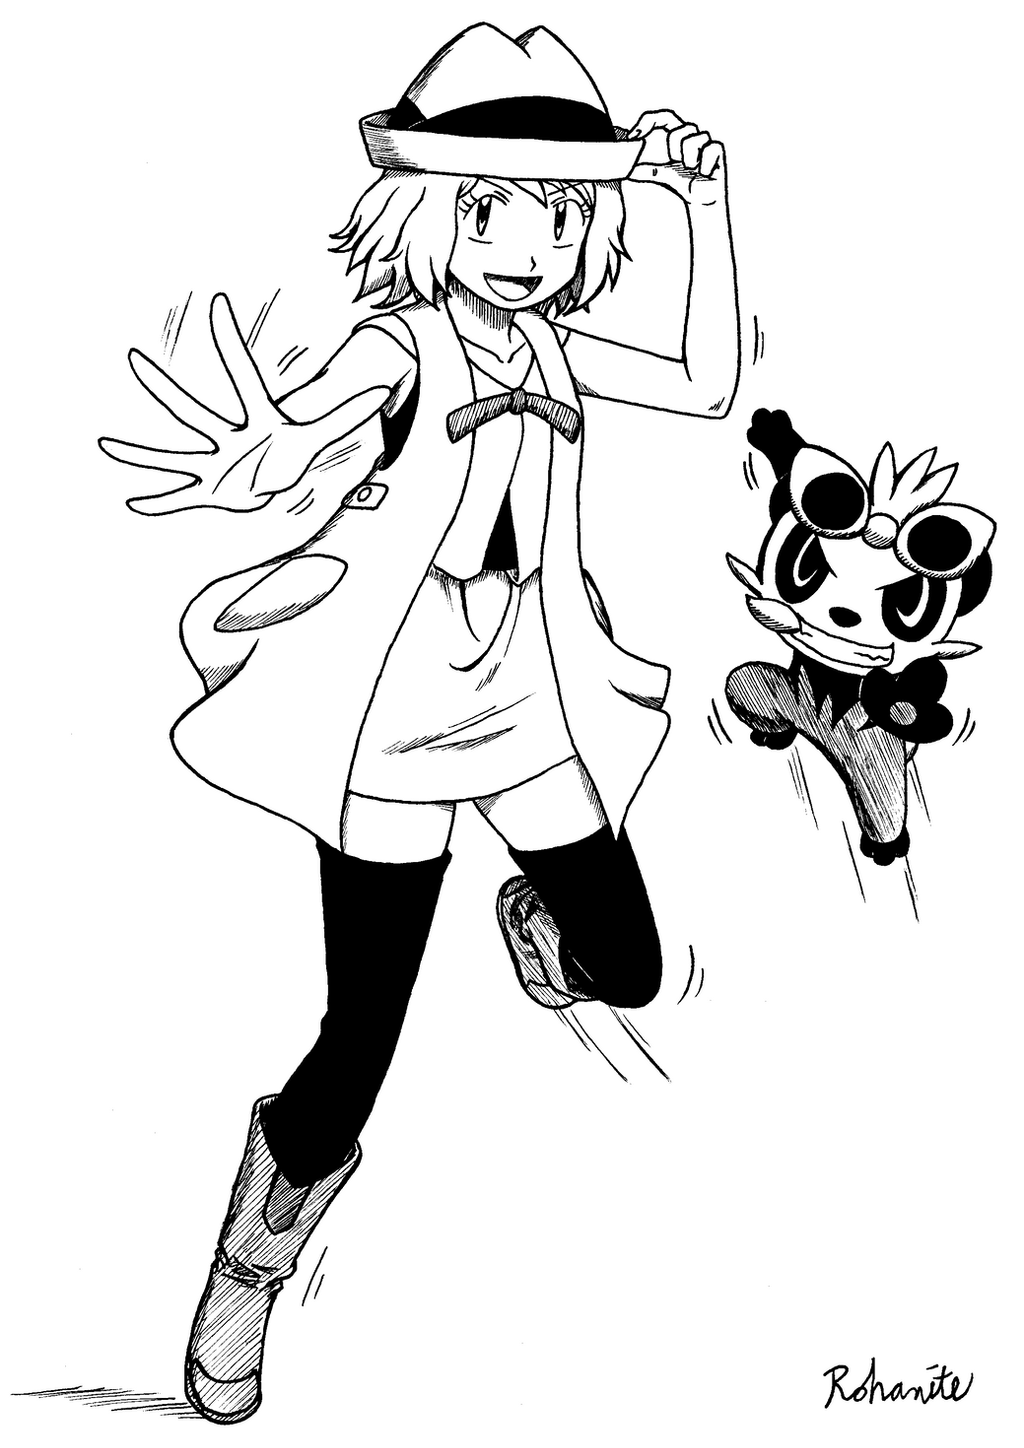 Pokemon coloring pages pancham - Serena And Pancham By Rohanite Serena And Pancham By Rohanite